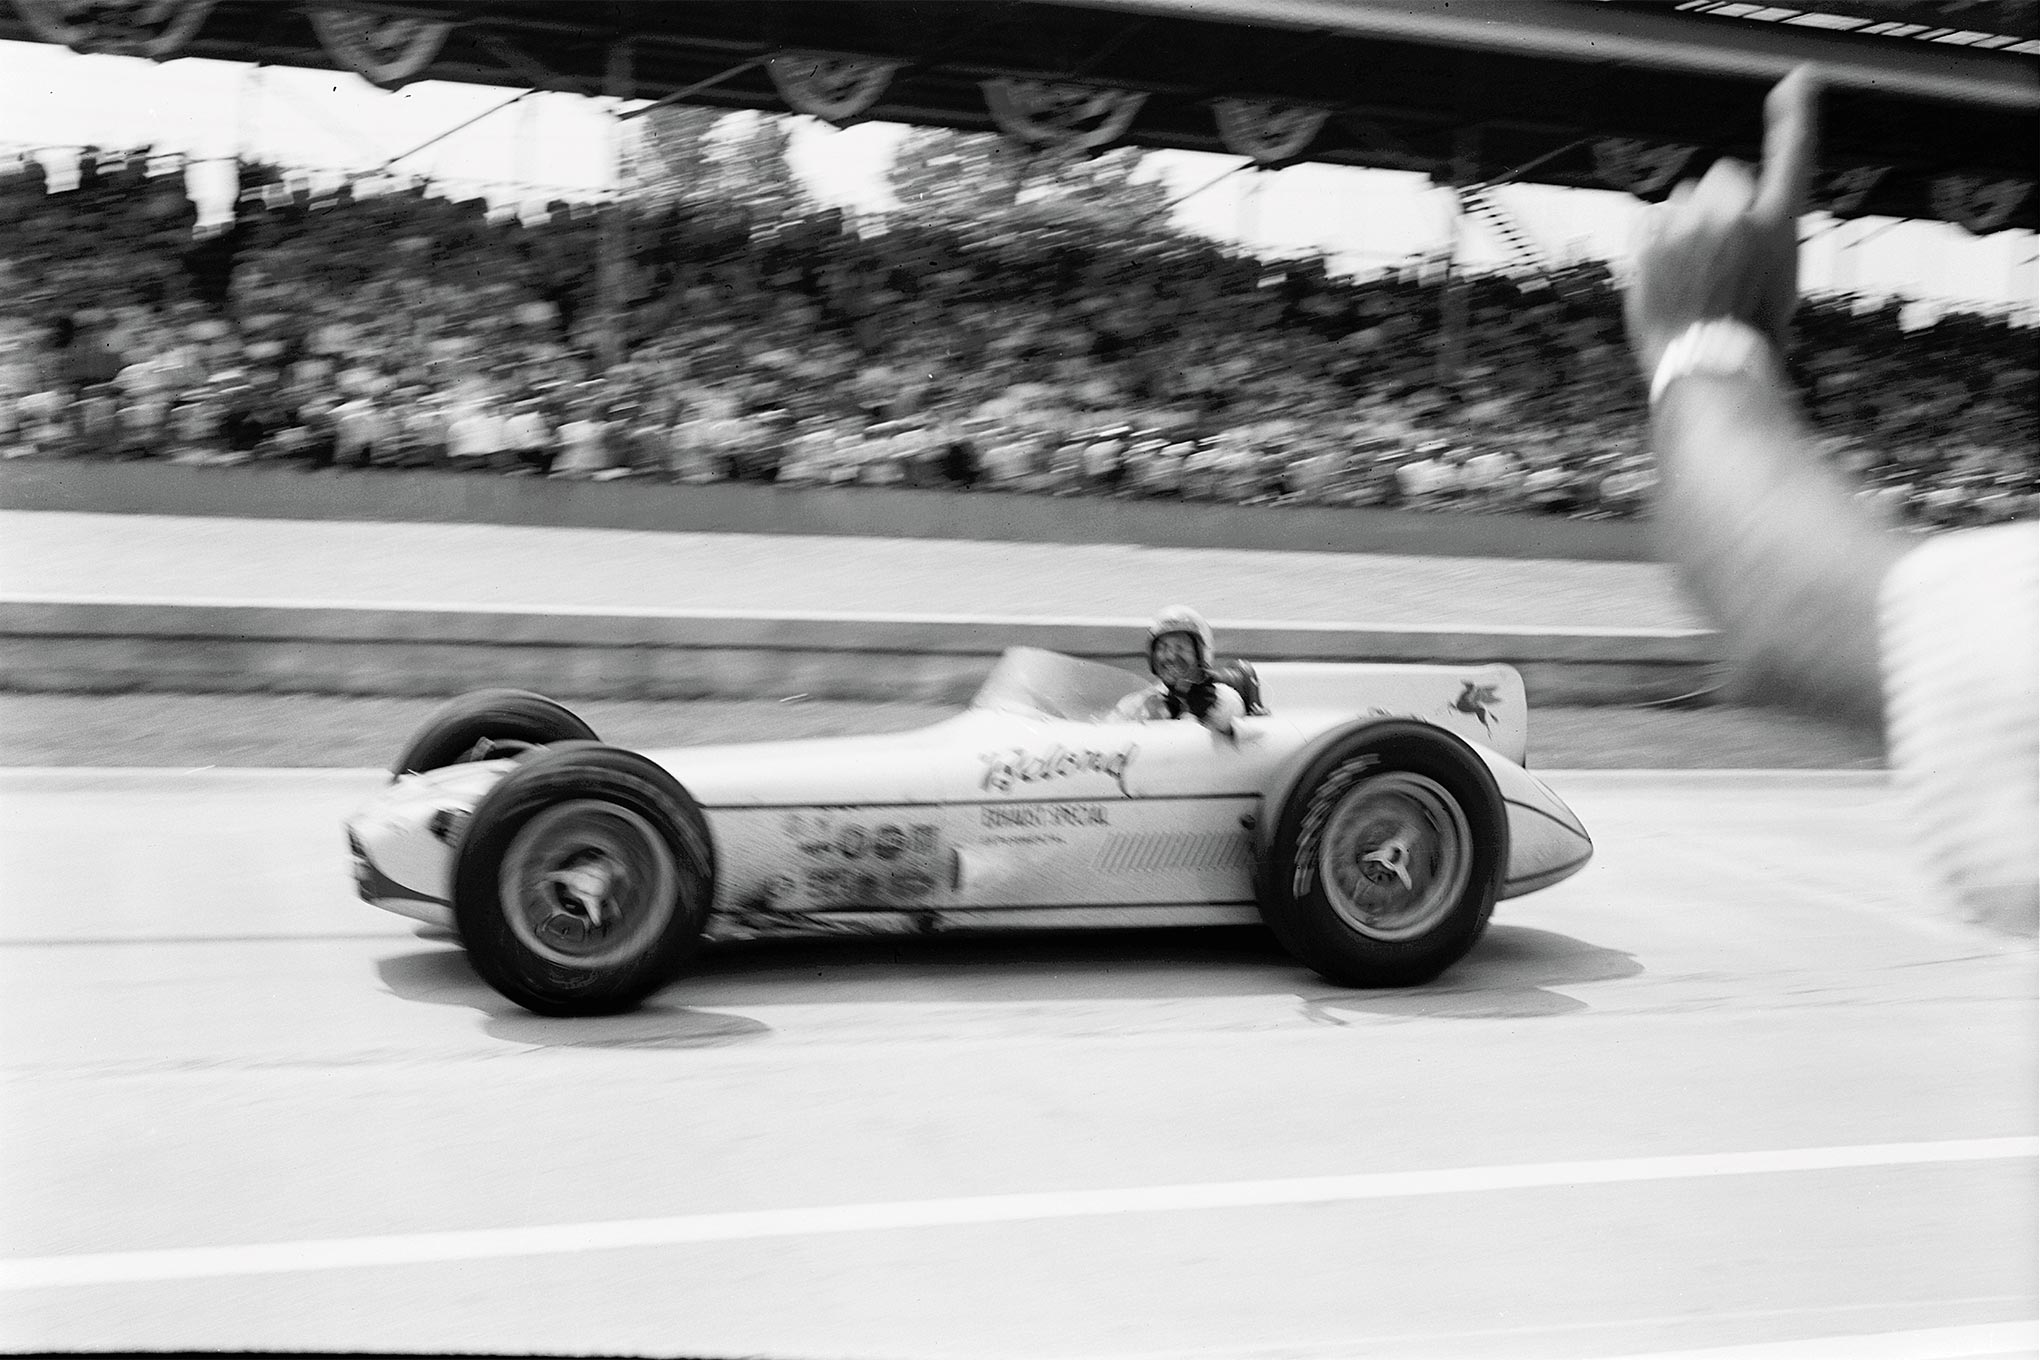 """Prior to the race, Sam Hanks vowed to retire from champ cars after his 12th Indy 500 attempt and promptly did. Car owner George Salih, by day the shop foreman for Meyer-Drake, built the revolutionary Belond Exhaust Special by night in his home garage. His winning formula combined the field's lightest (1,650 pounds, dry) and shortest (35 inches at headrest) package with an Offy """"laid over"""" to the inside, within 18 degrees of horizontal—putting its crankshaft 5 full inches to the left of center."""